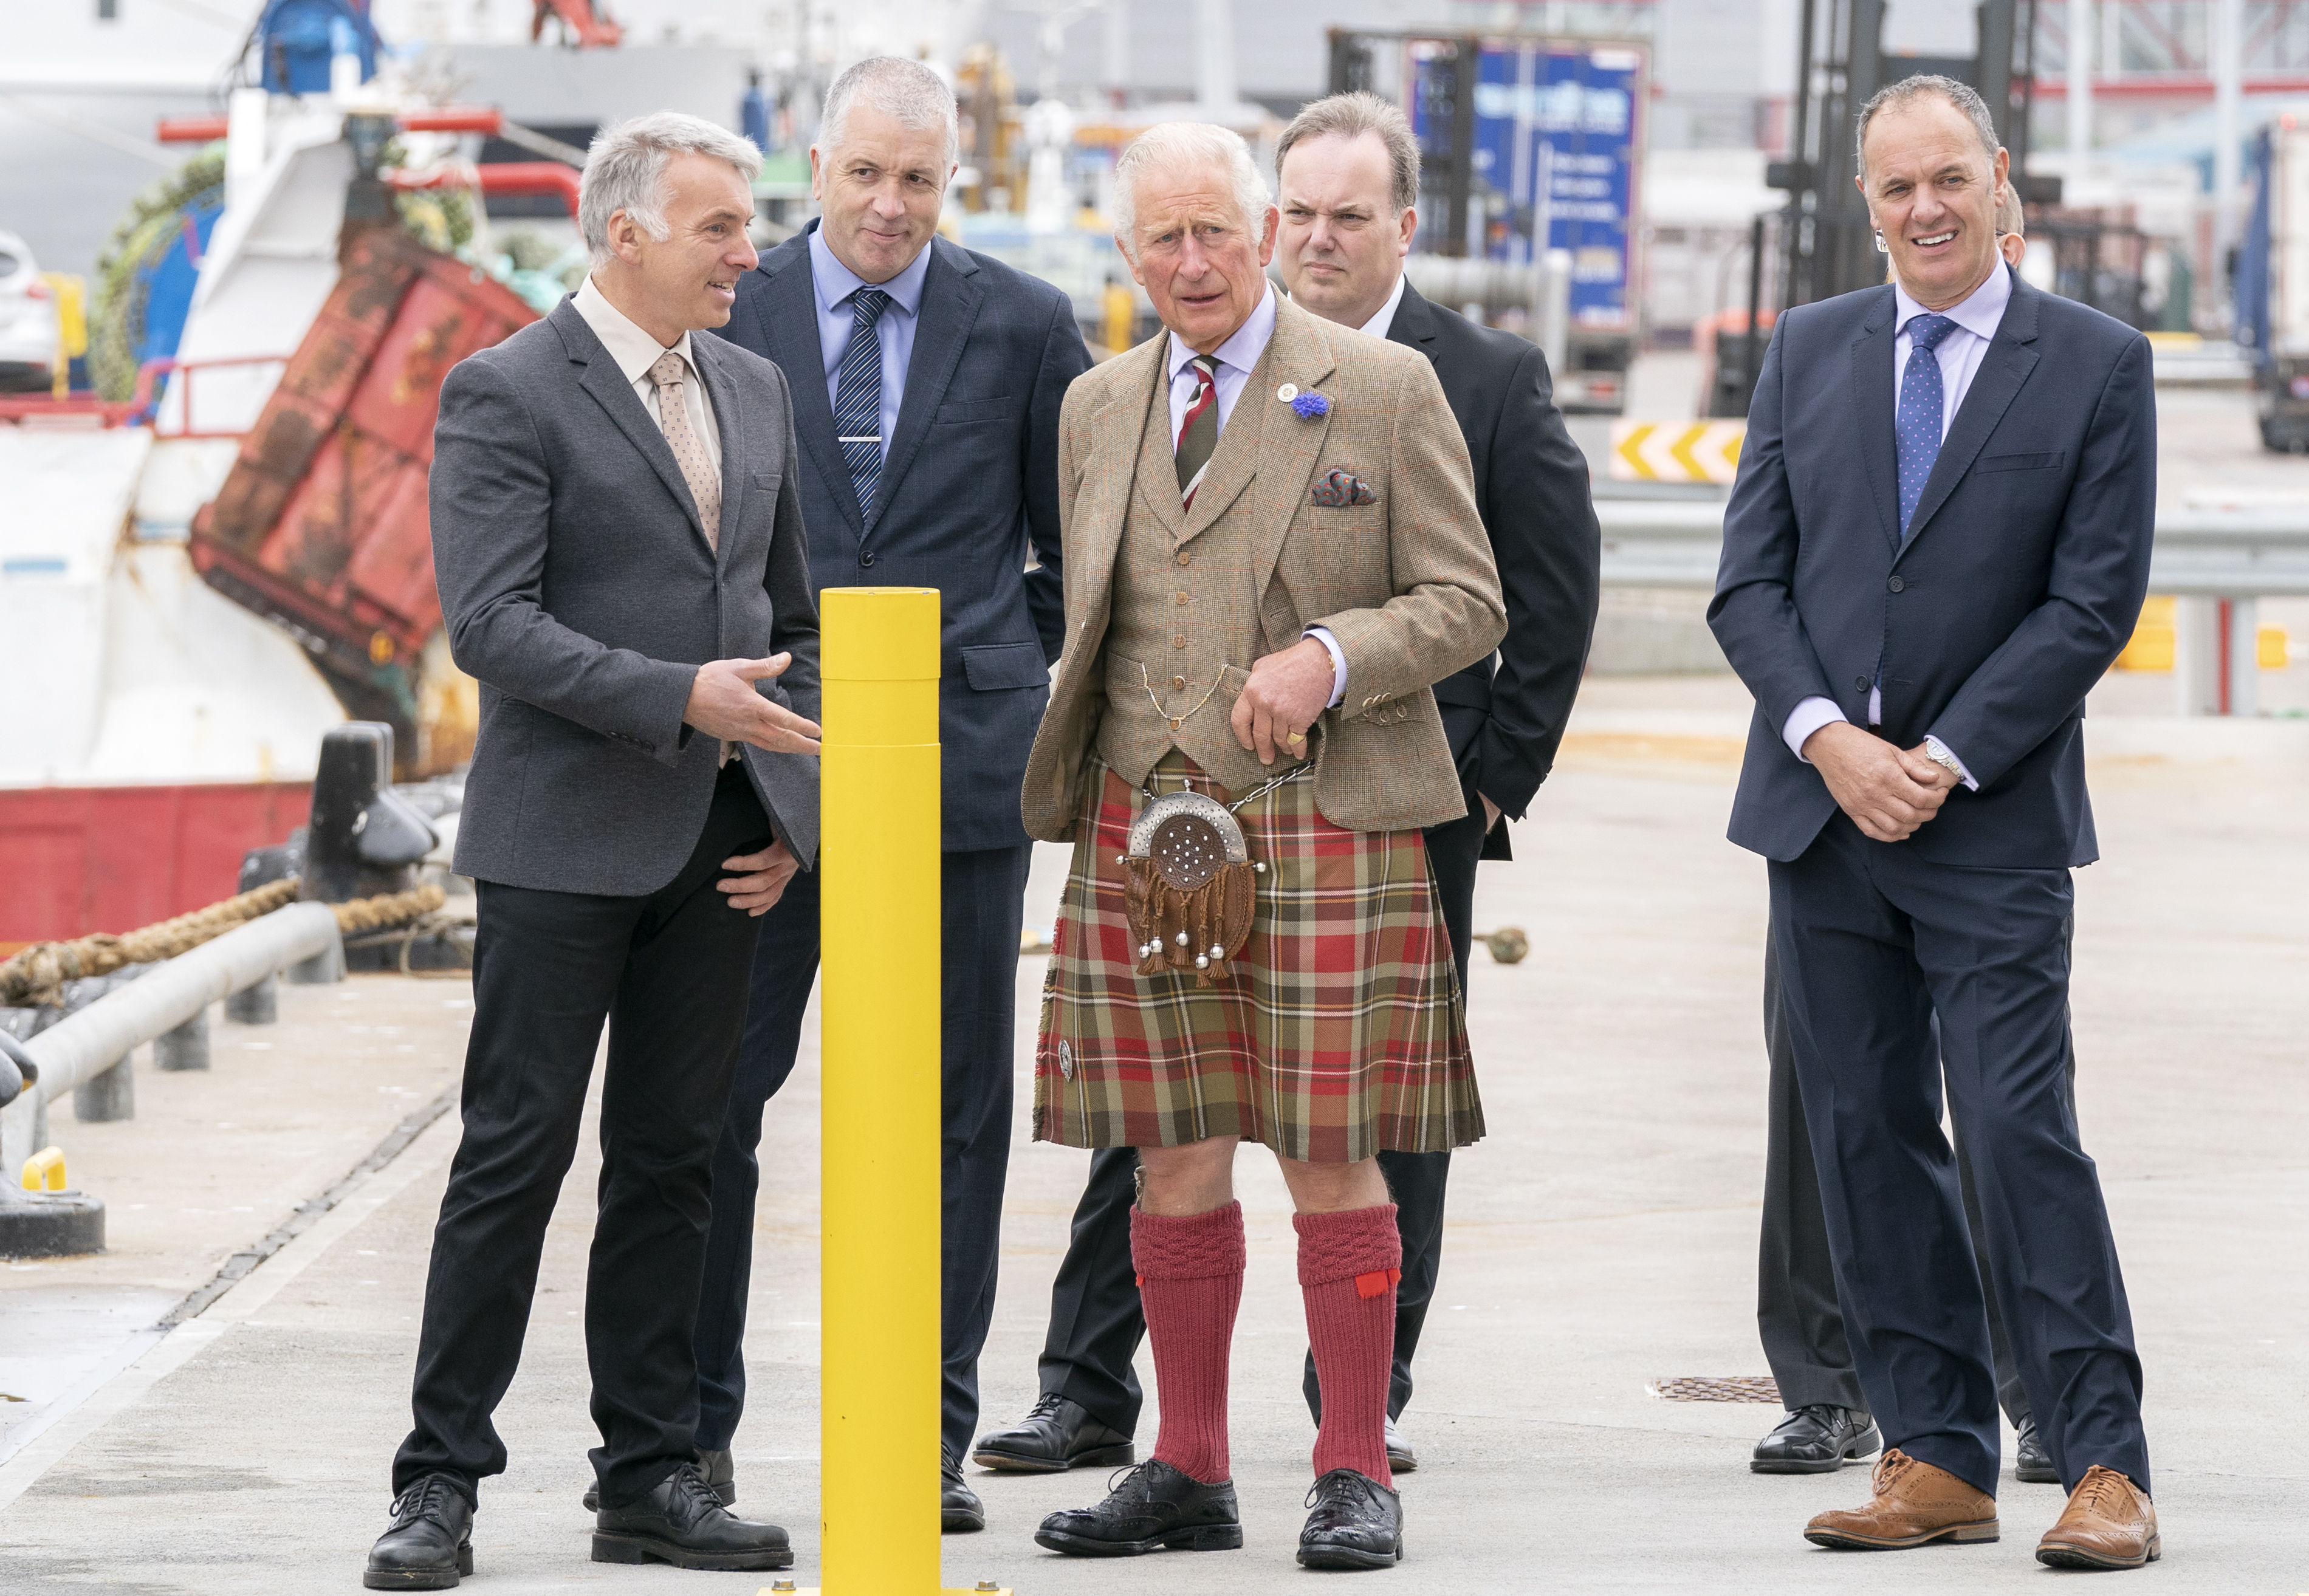 <p>The Prince of Wales, known as the Duke of Rothesay when in Scotland, during a visit to the Lerwick Harbour Fish Market at Shetland Seafood Auctions Ltd at Lerwick Fishmarket, in Lerwick, Shetland, on the second day of a two-day visit to Scotland. Picture date: Friday July 30, 2021.</p>